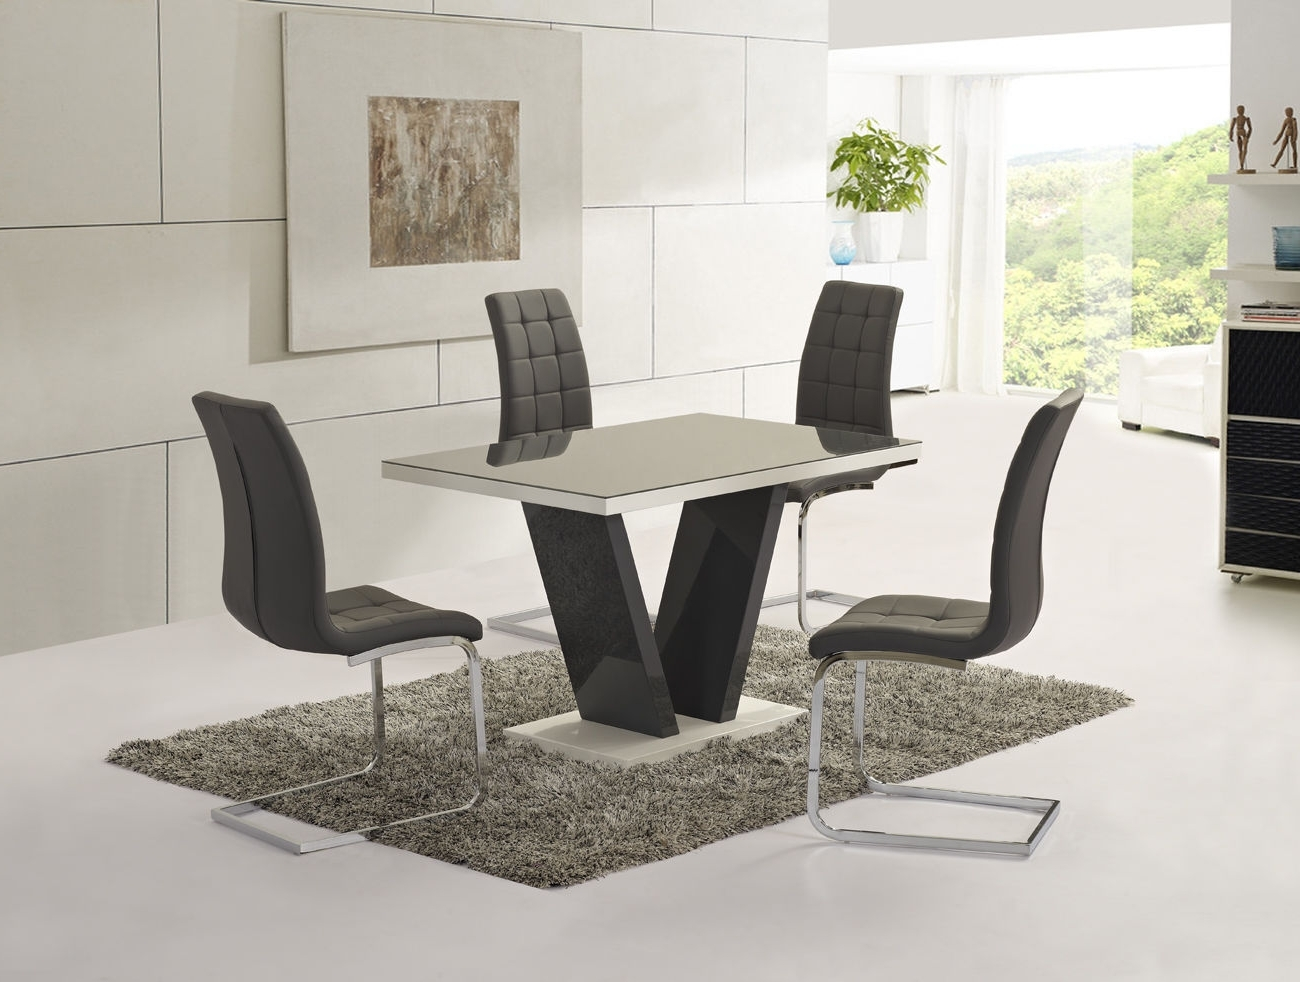 Popular Black Gloss Dining Tables And Chairs Pertaining To Ga Vico Gloss Grey Glass Top Designer 160Cm Dining Set – 4/6 Grey / White  Chairs (Gallery 19 of 25)